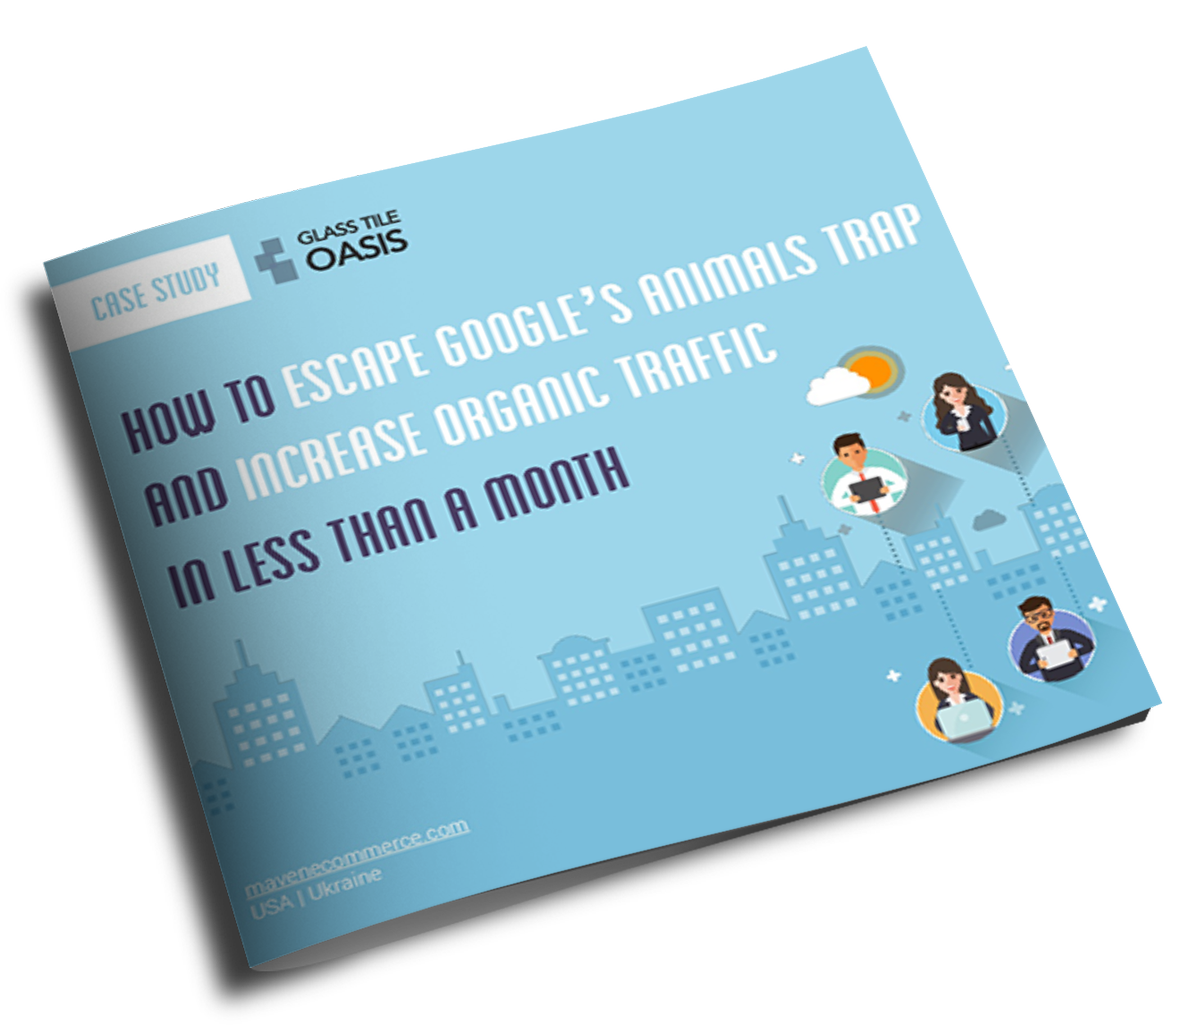 Case Study: How to Escape #Google's Animals Trap and Increase Organic Traffic  http:// buff.ly/2qVQaE0  &nbsp;   #seo<br>http://pic.twitter.com/bDdMzMHpSJ